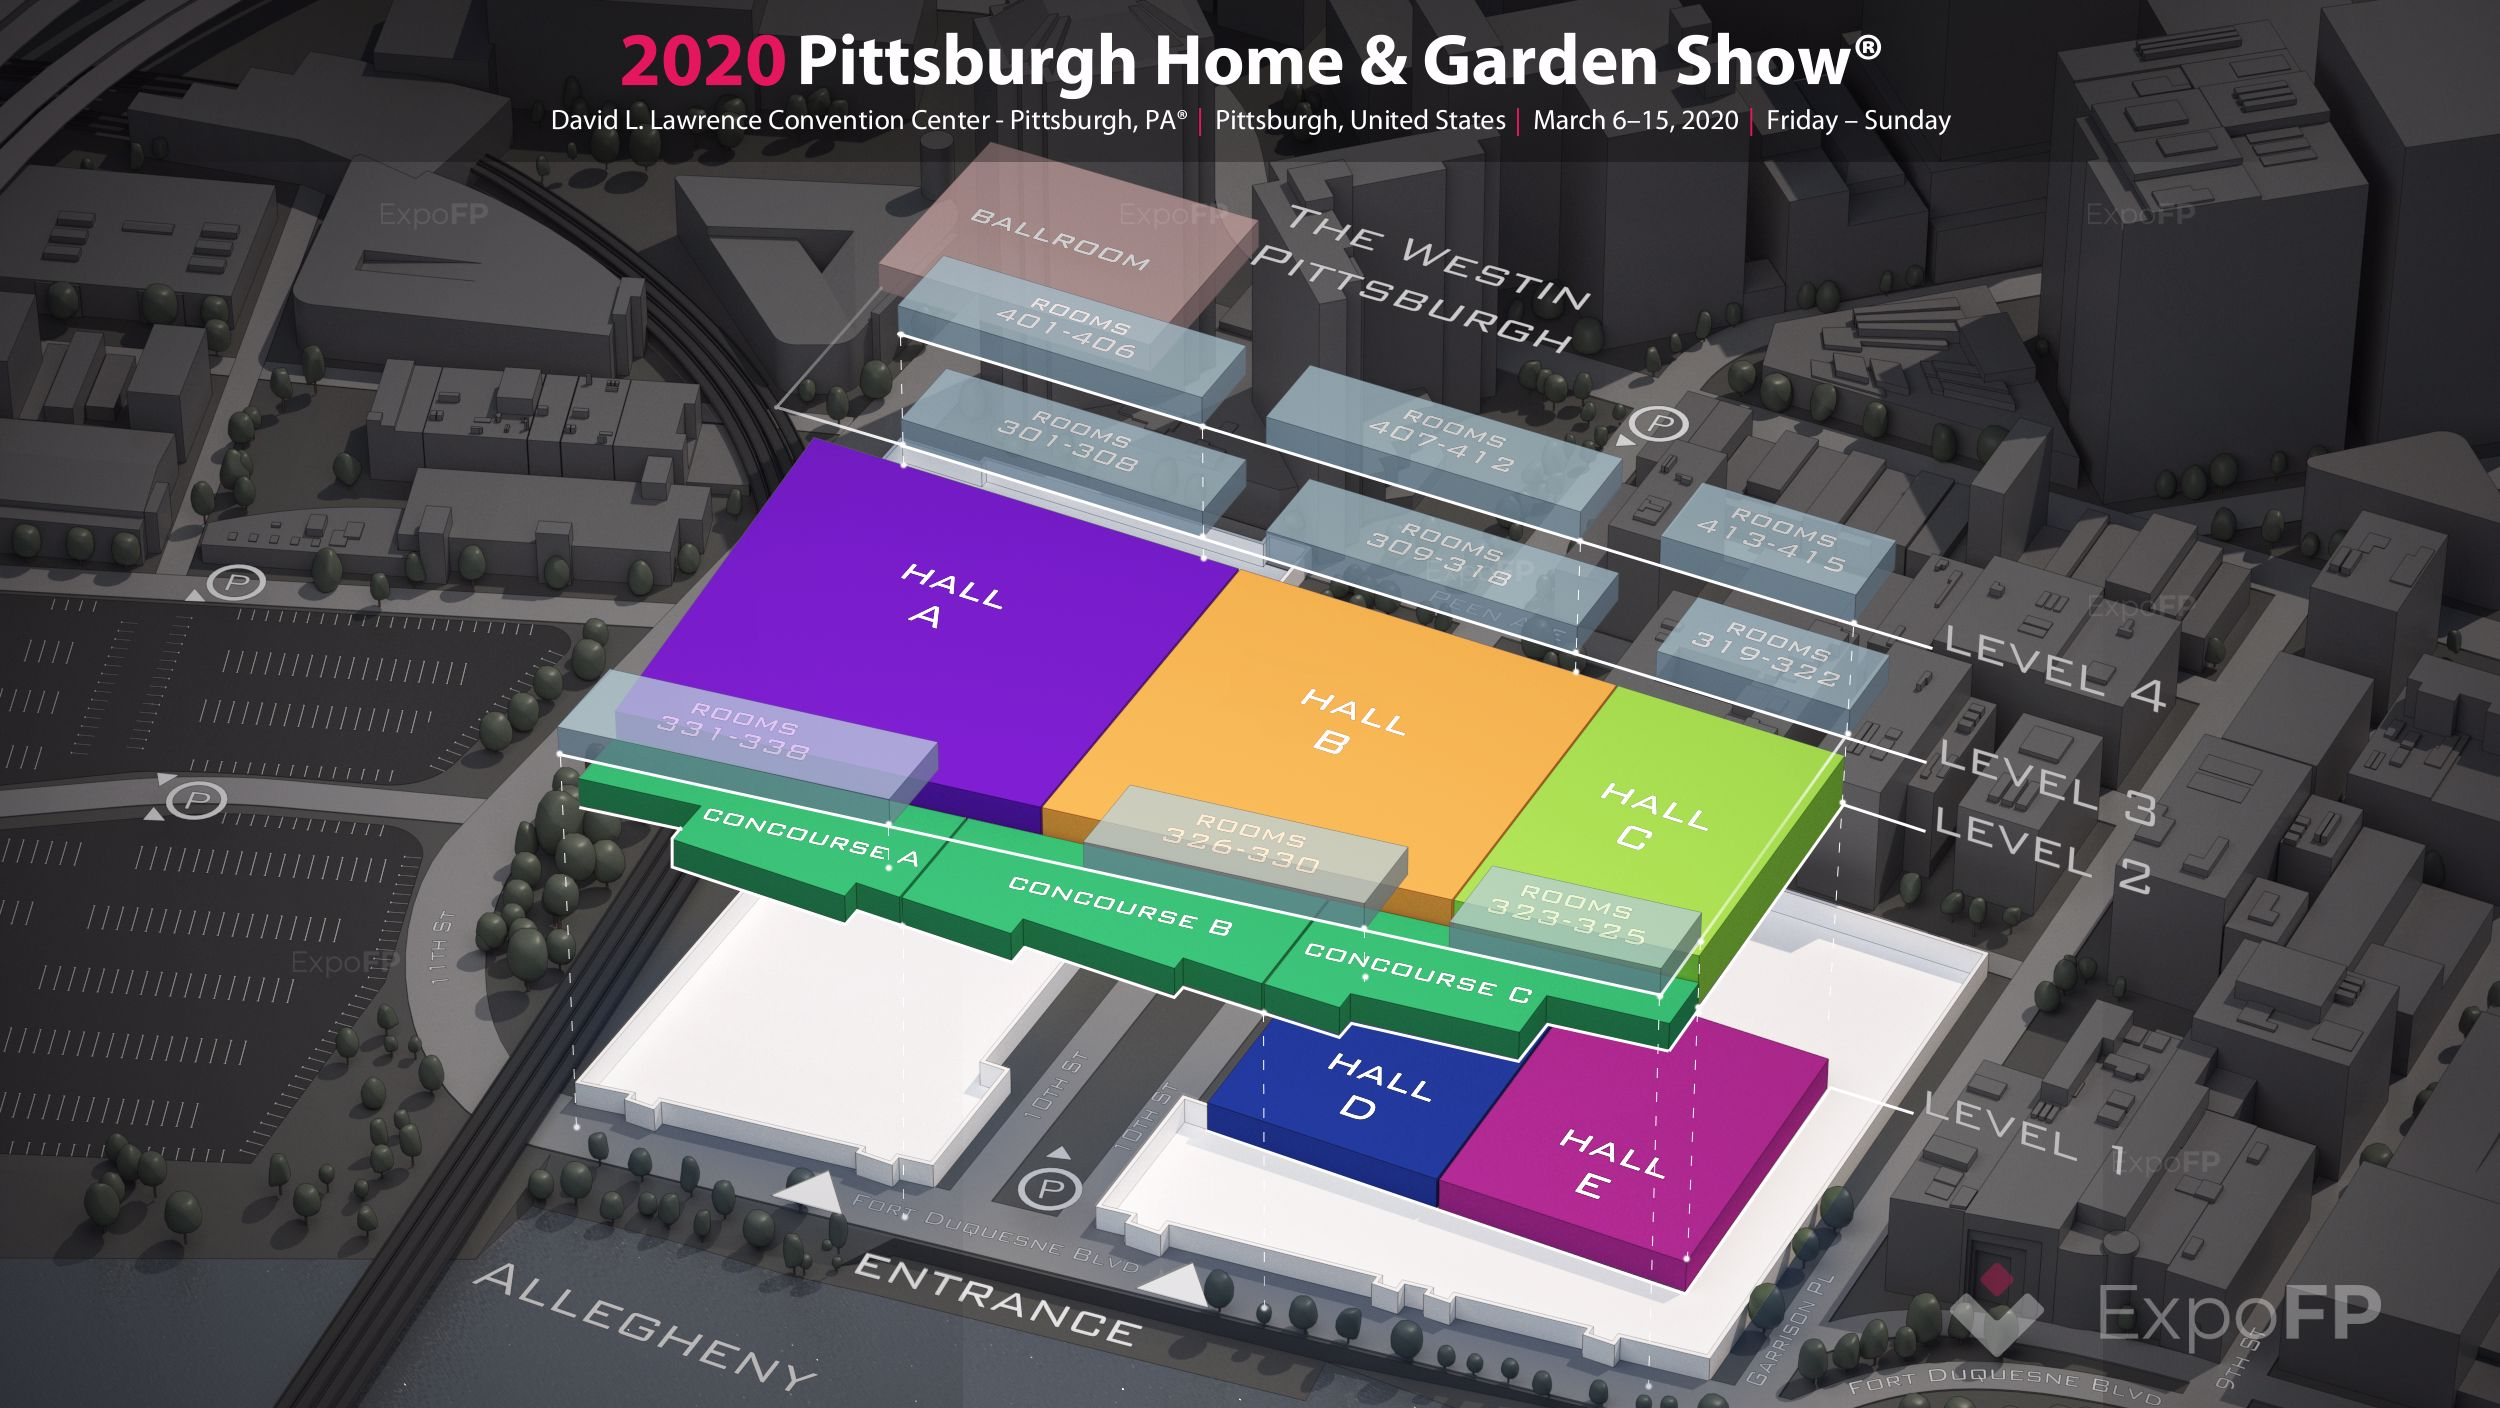 Home And Garden Show 2020.Pittsburgh Home Garden Show 2020 In David L Lawrence